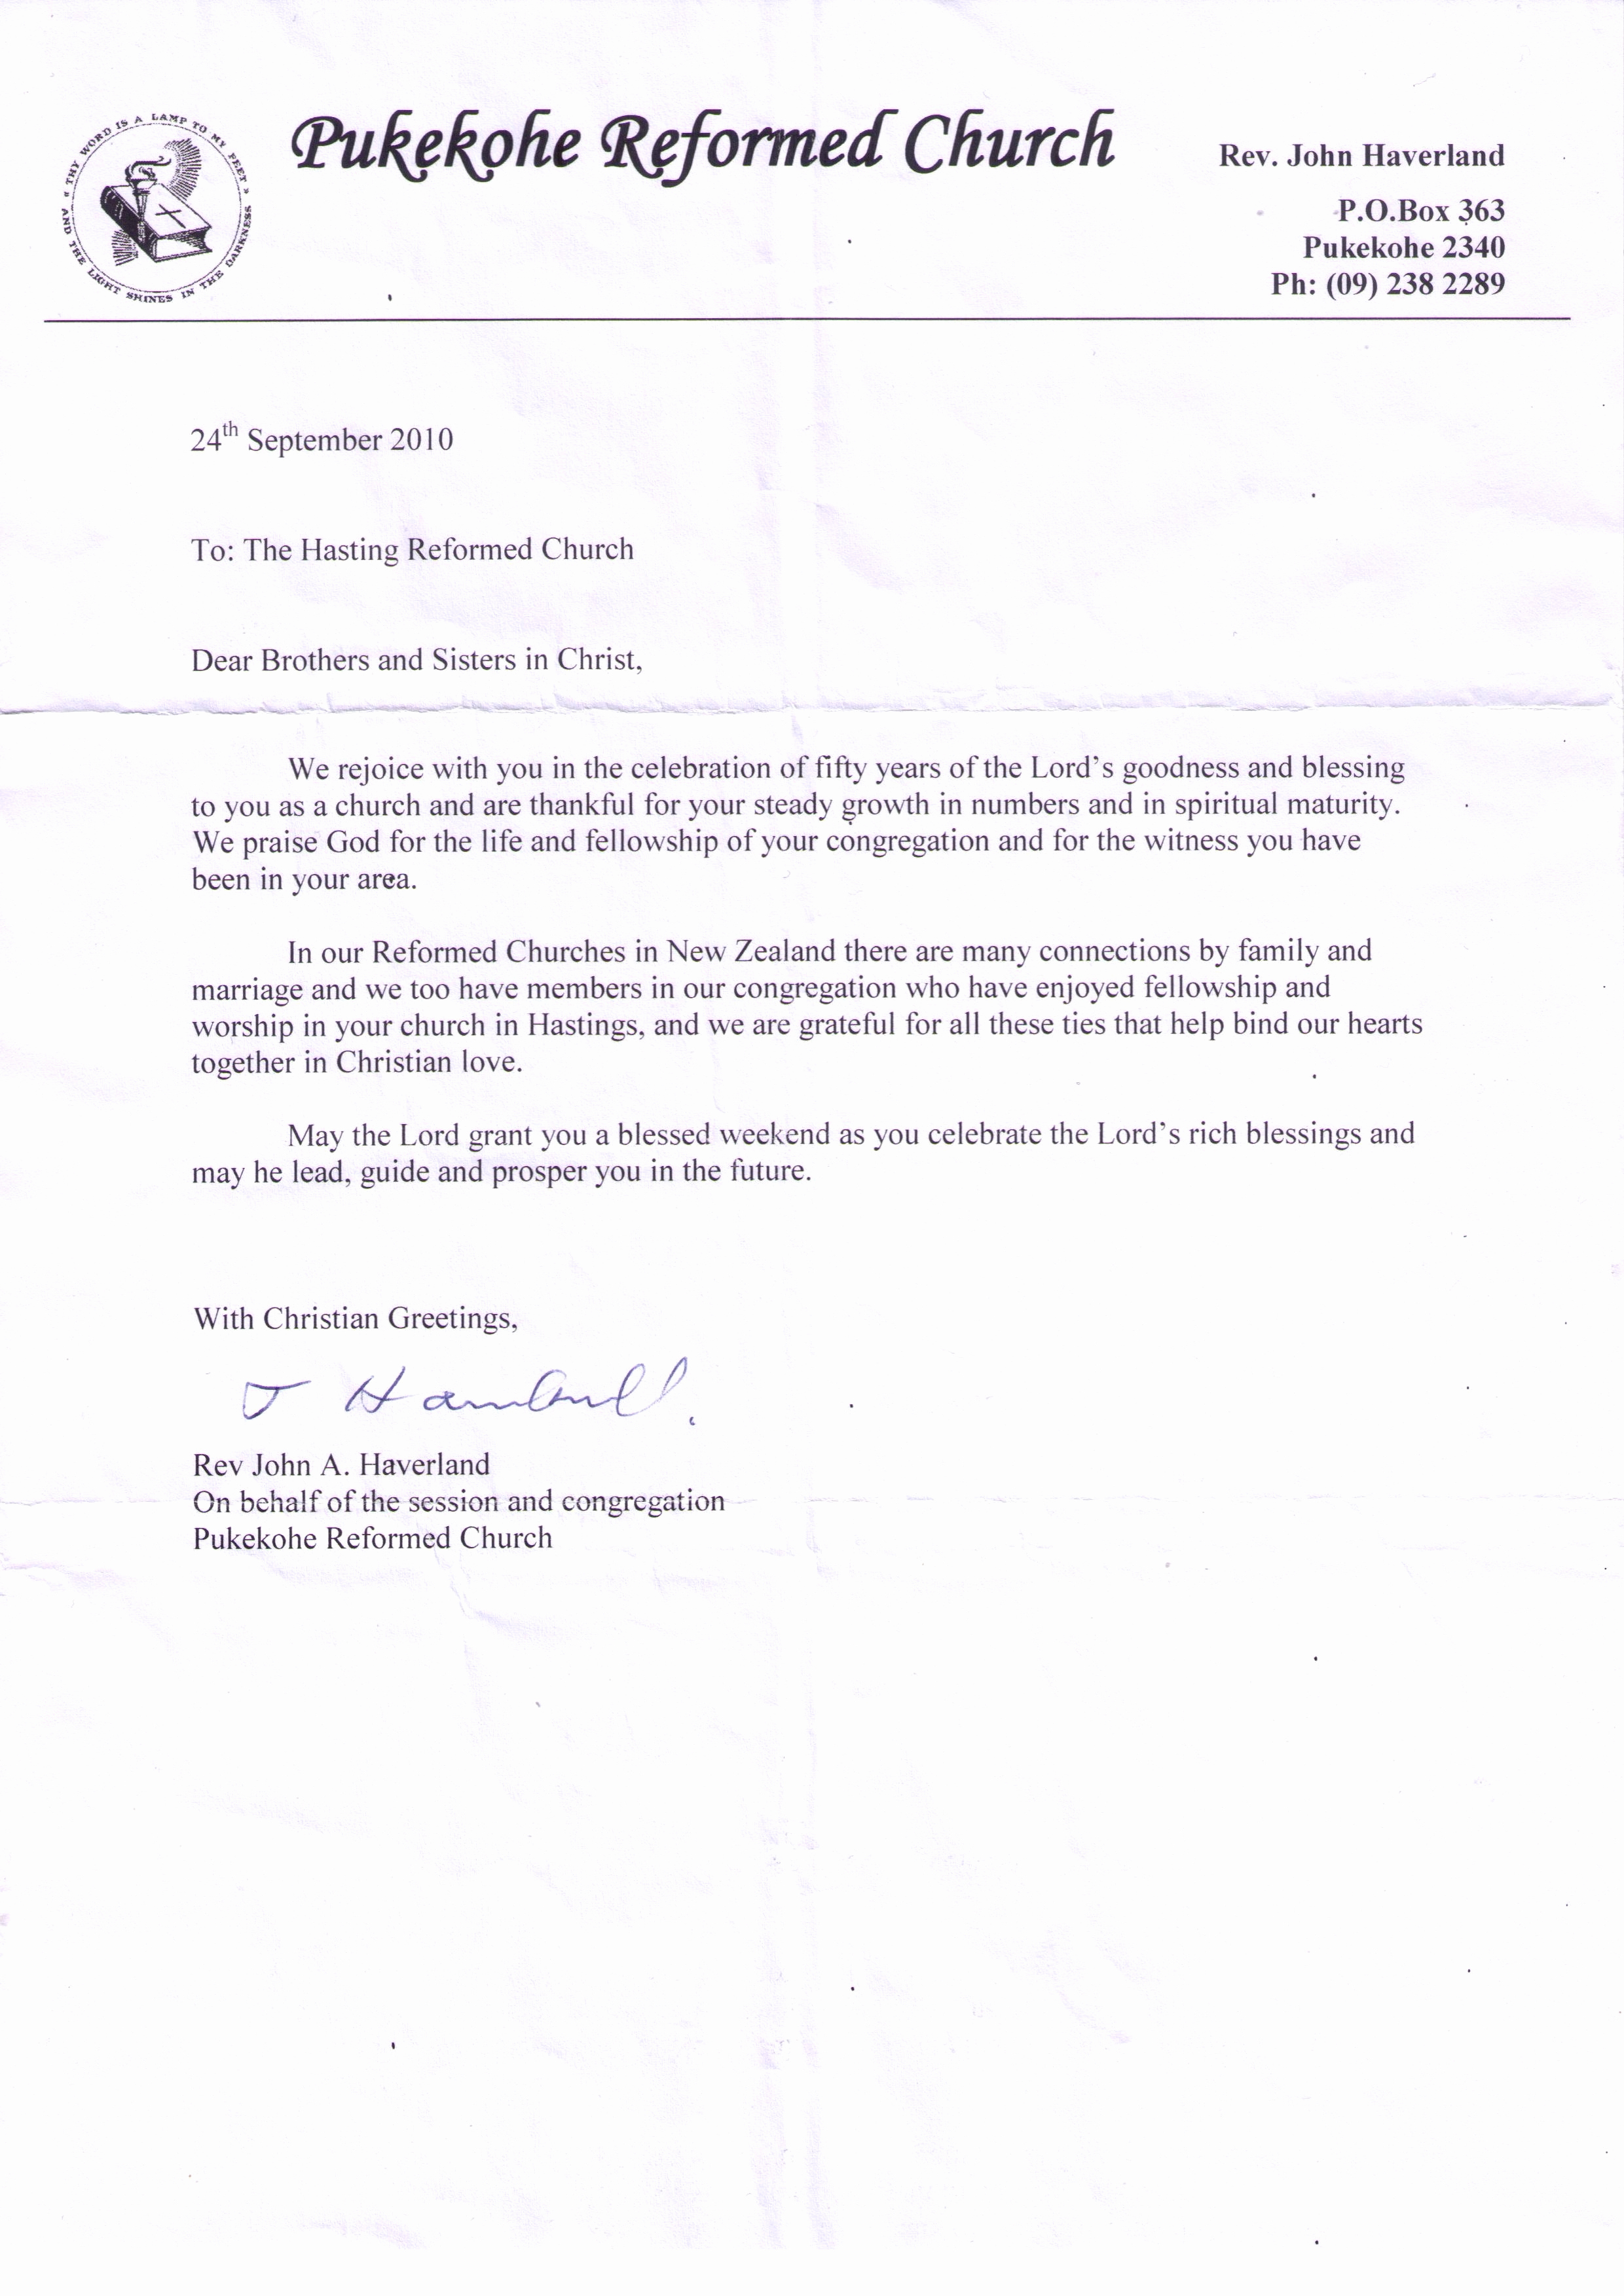 Pastoral Anniversary Invitation Letter Inspirational Church Anniversary Letter From the Pastor